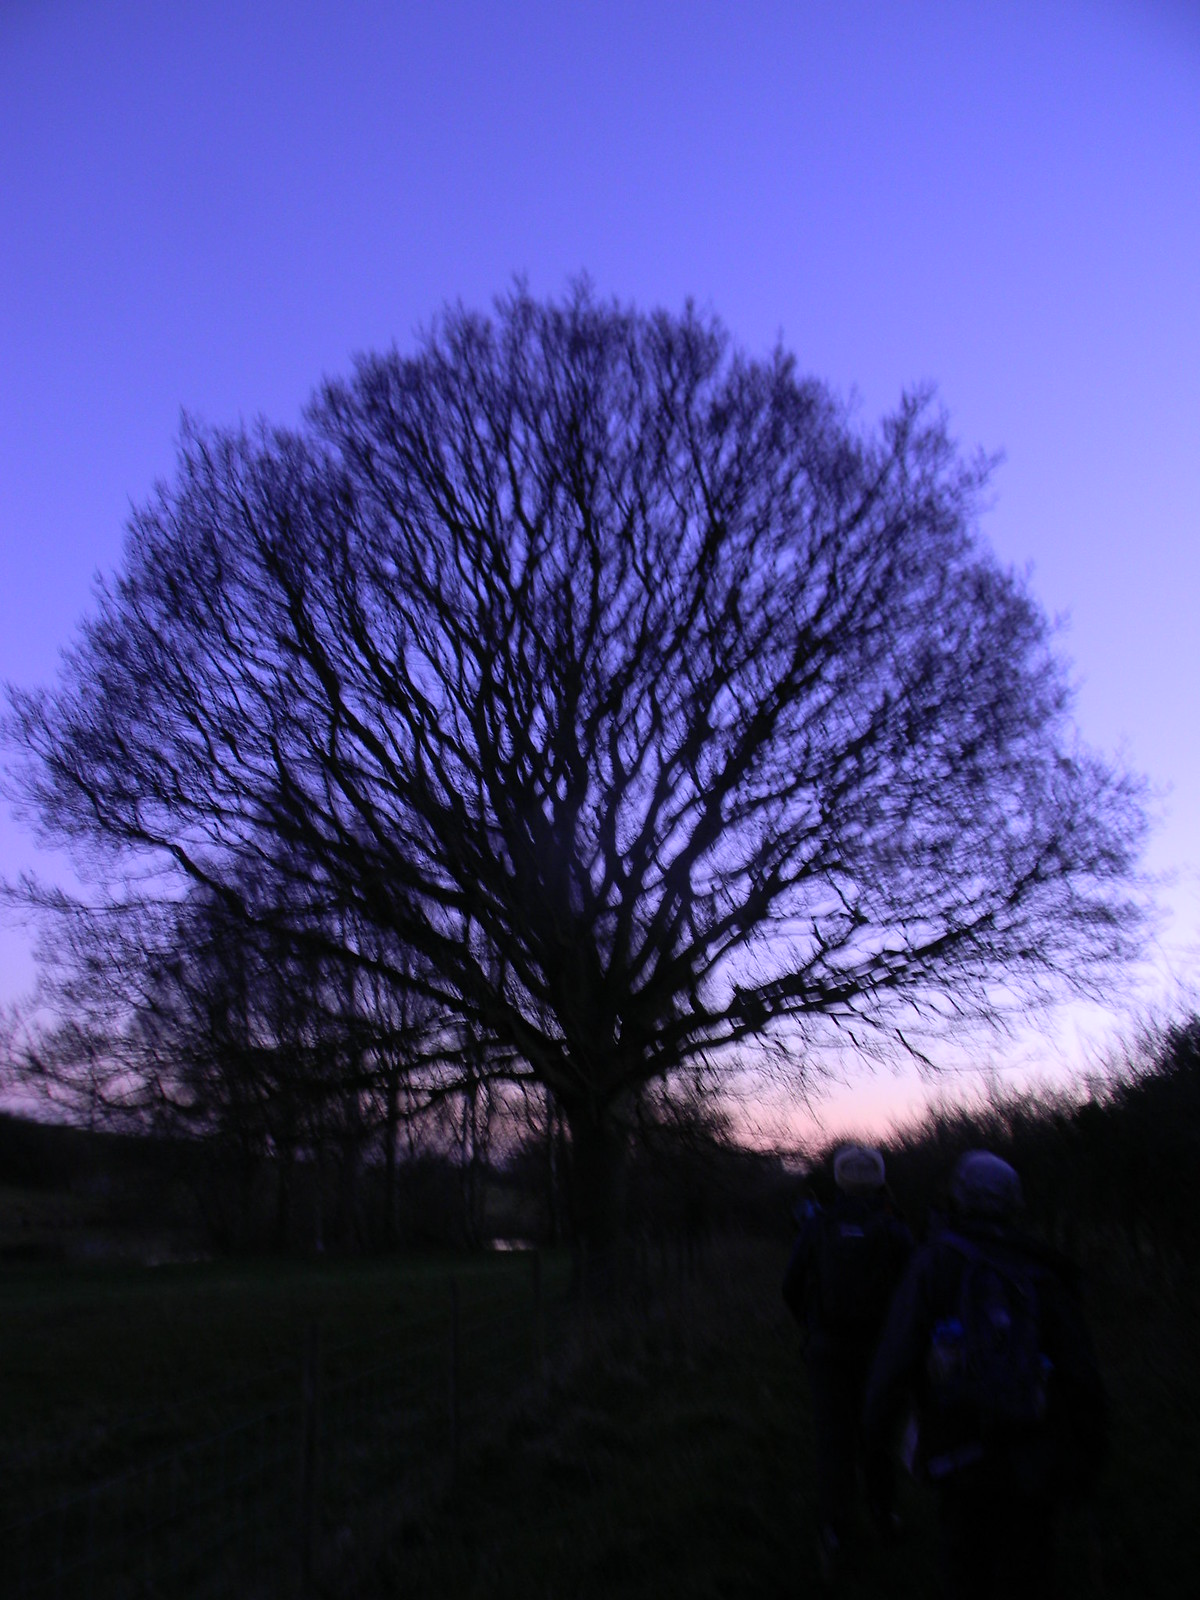 Tree at dusk 1 Appledore Short Circular